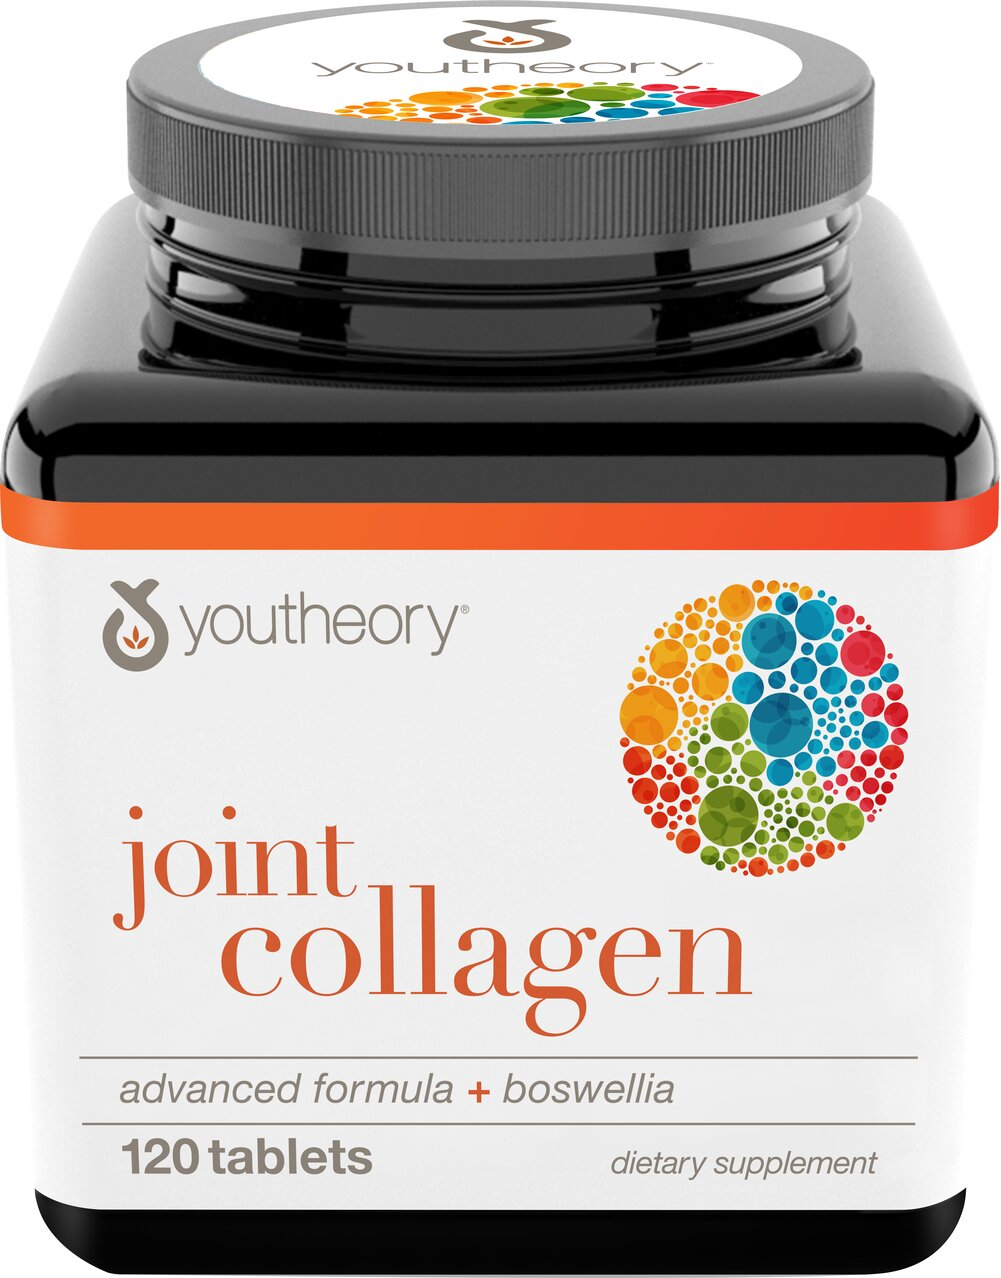 Joint Collagen Type 2 with Boswellia, Turmeric, Cinnamon & Quercetin  120 Tablets  $22.99